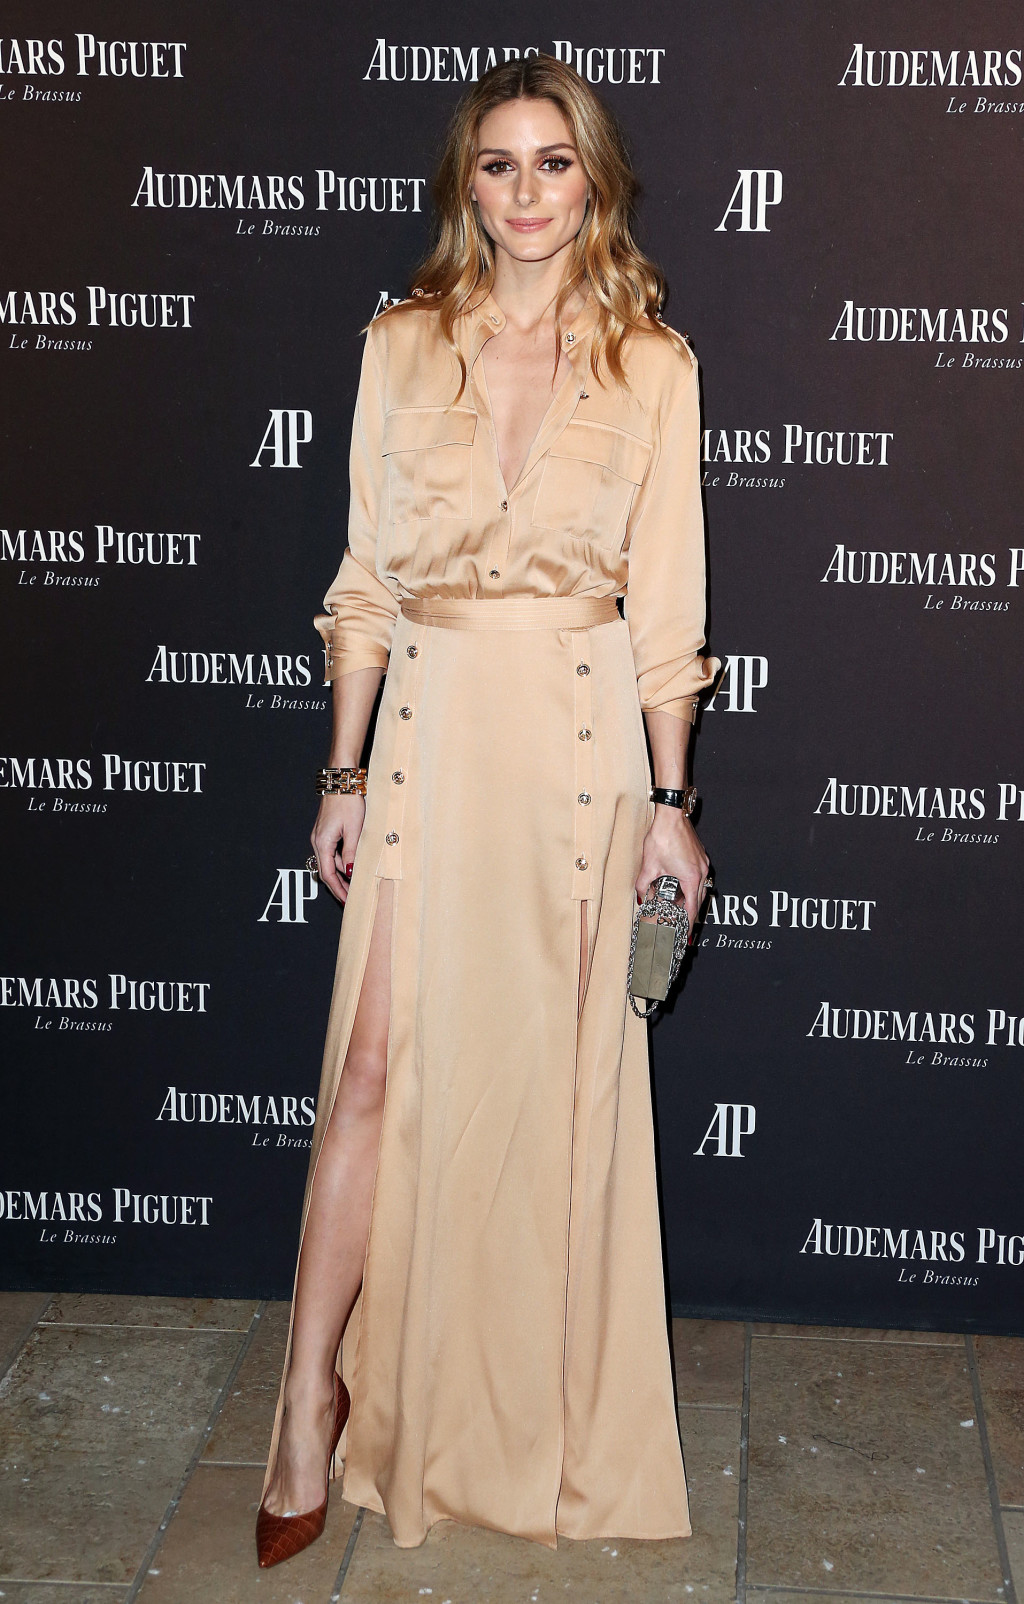 Olivia Palermo wearing a metallic gold Self-Portrait dress at the Audemars Piguet boutique opening